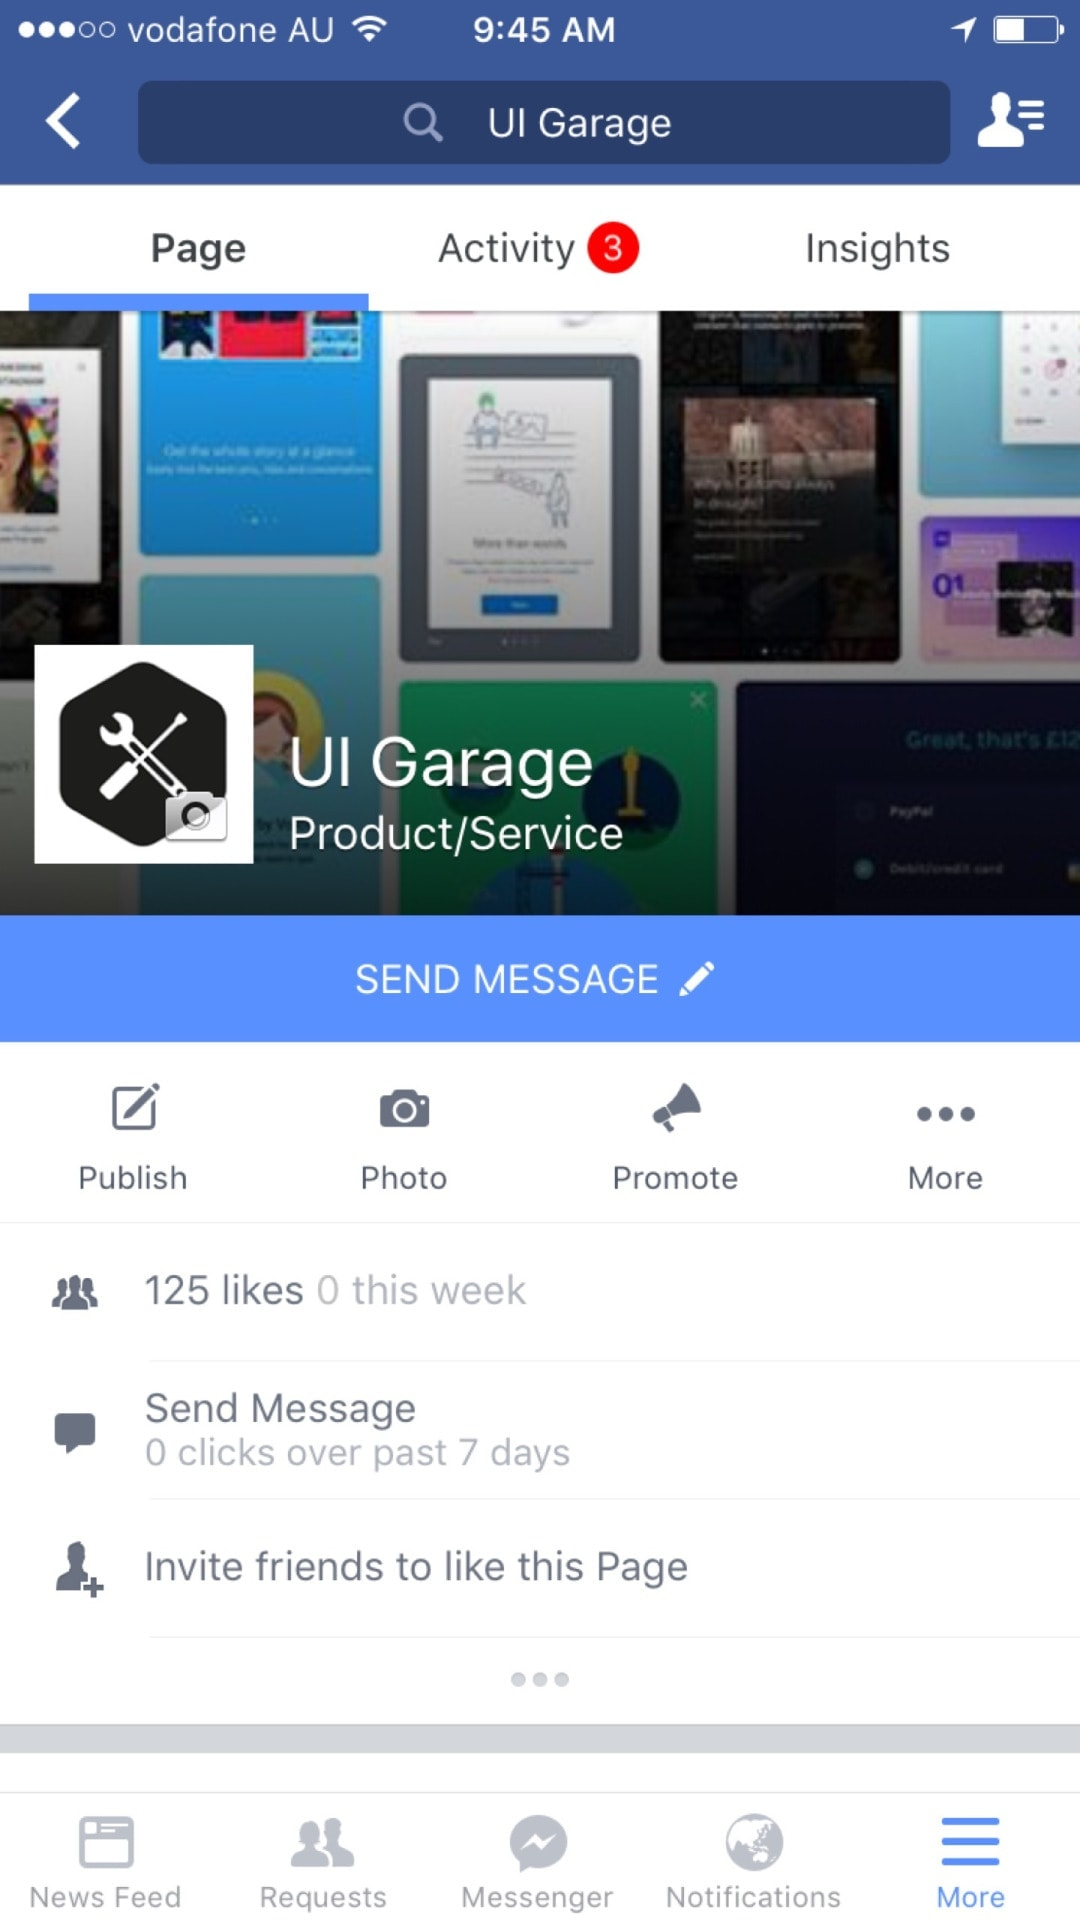 Facebook #iOS app #tab bar All iOS Tab bar  - UI Garage - The database of UI